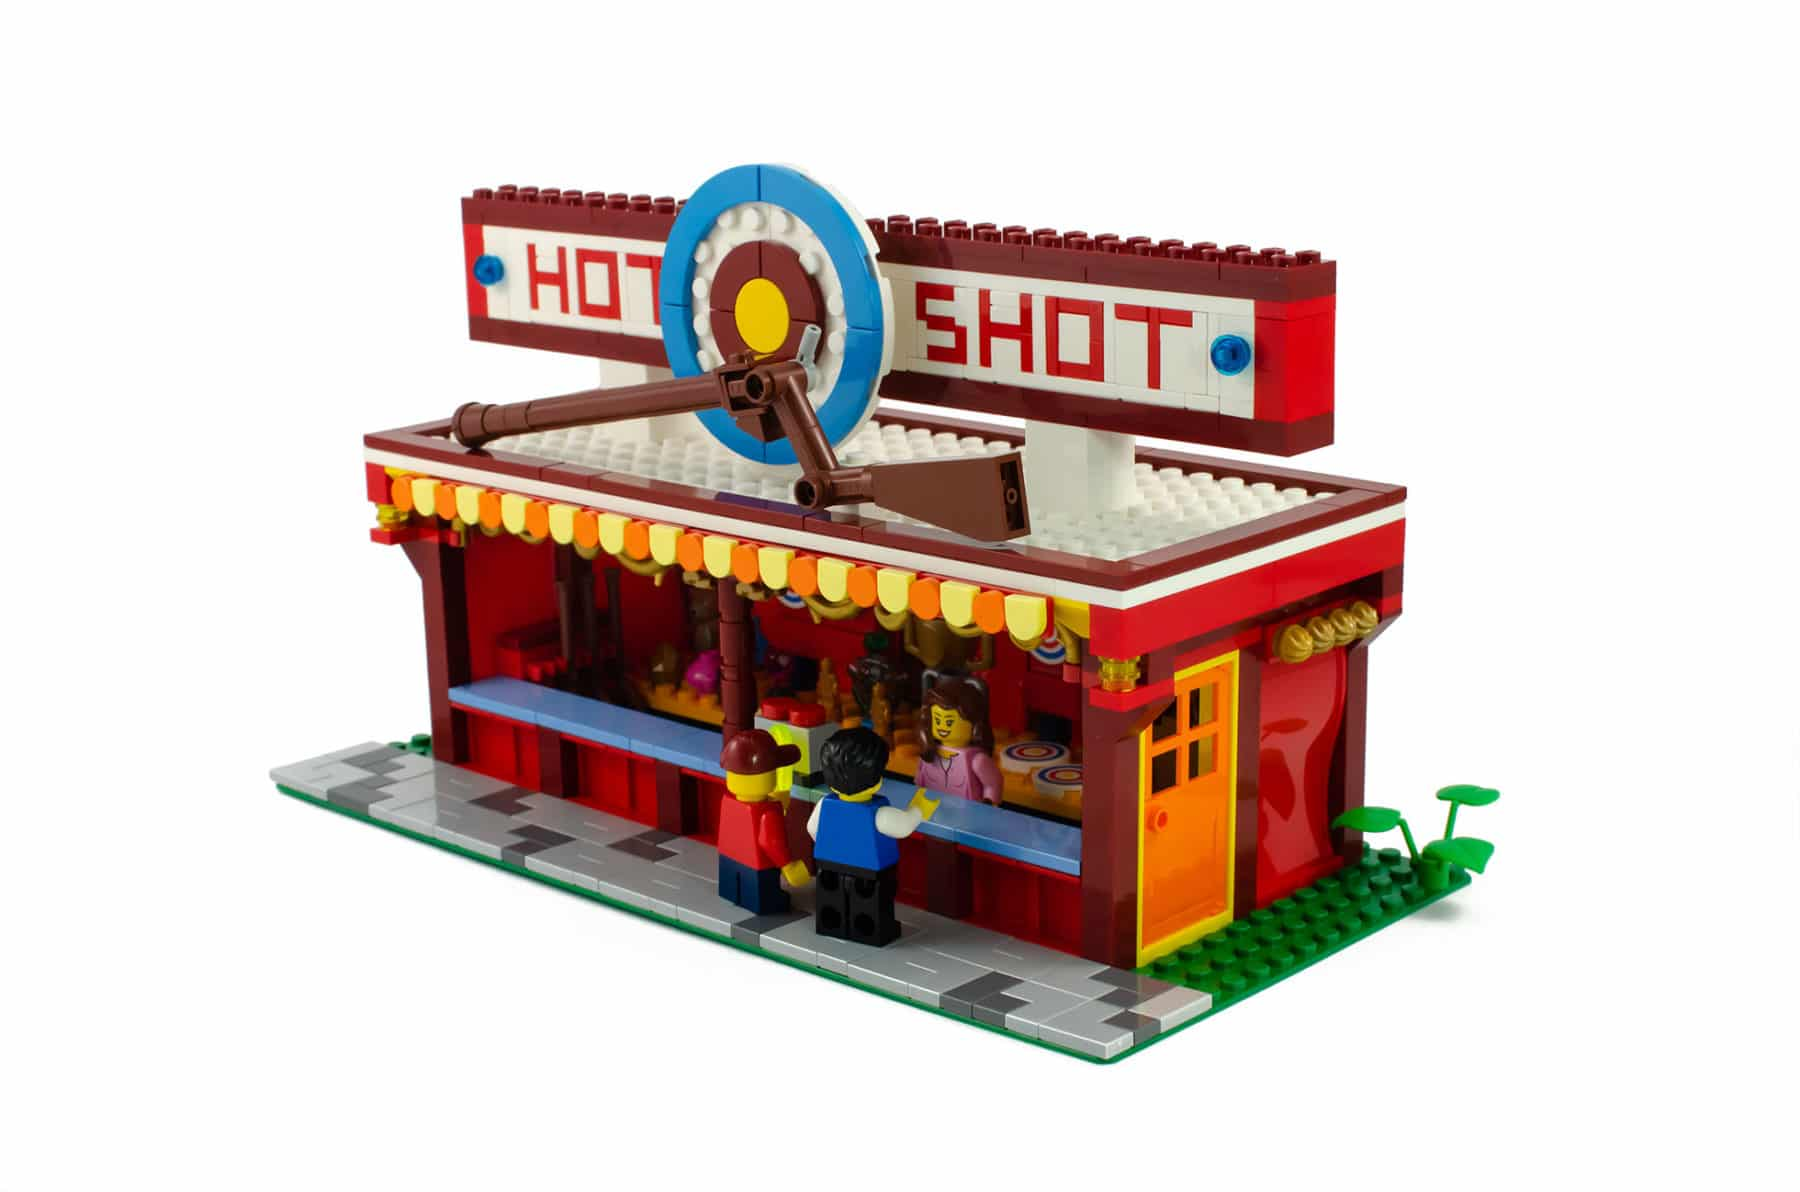 Bricklink AFOL Designer Program: Hot Shot Carnival